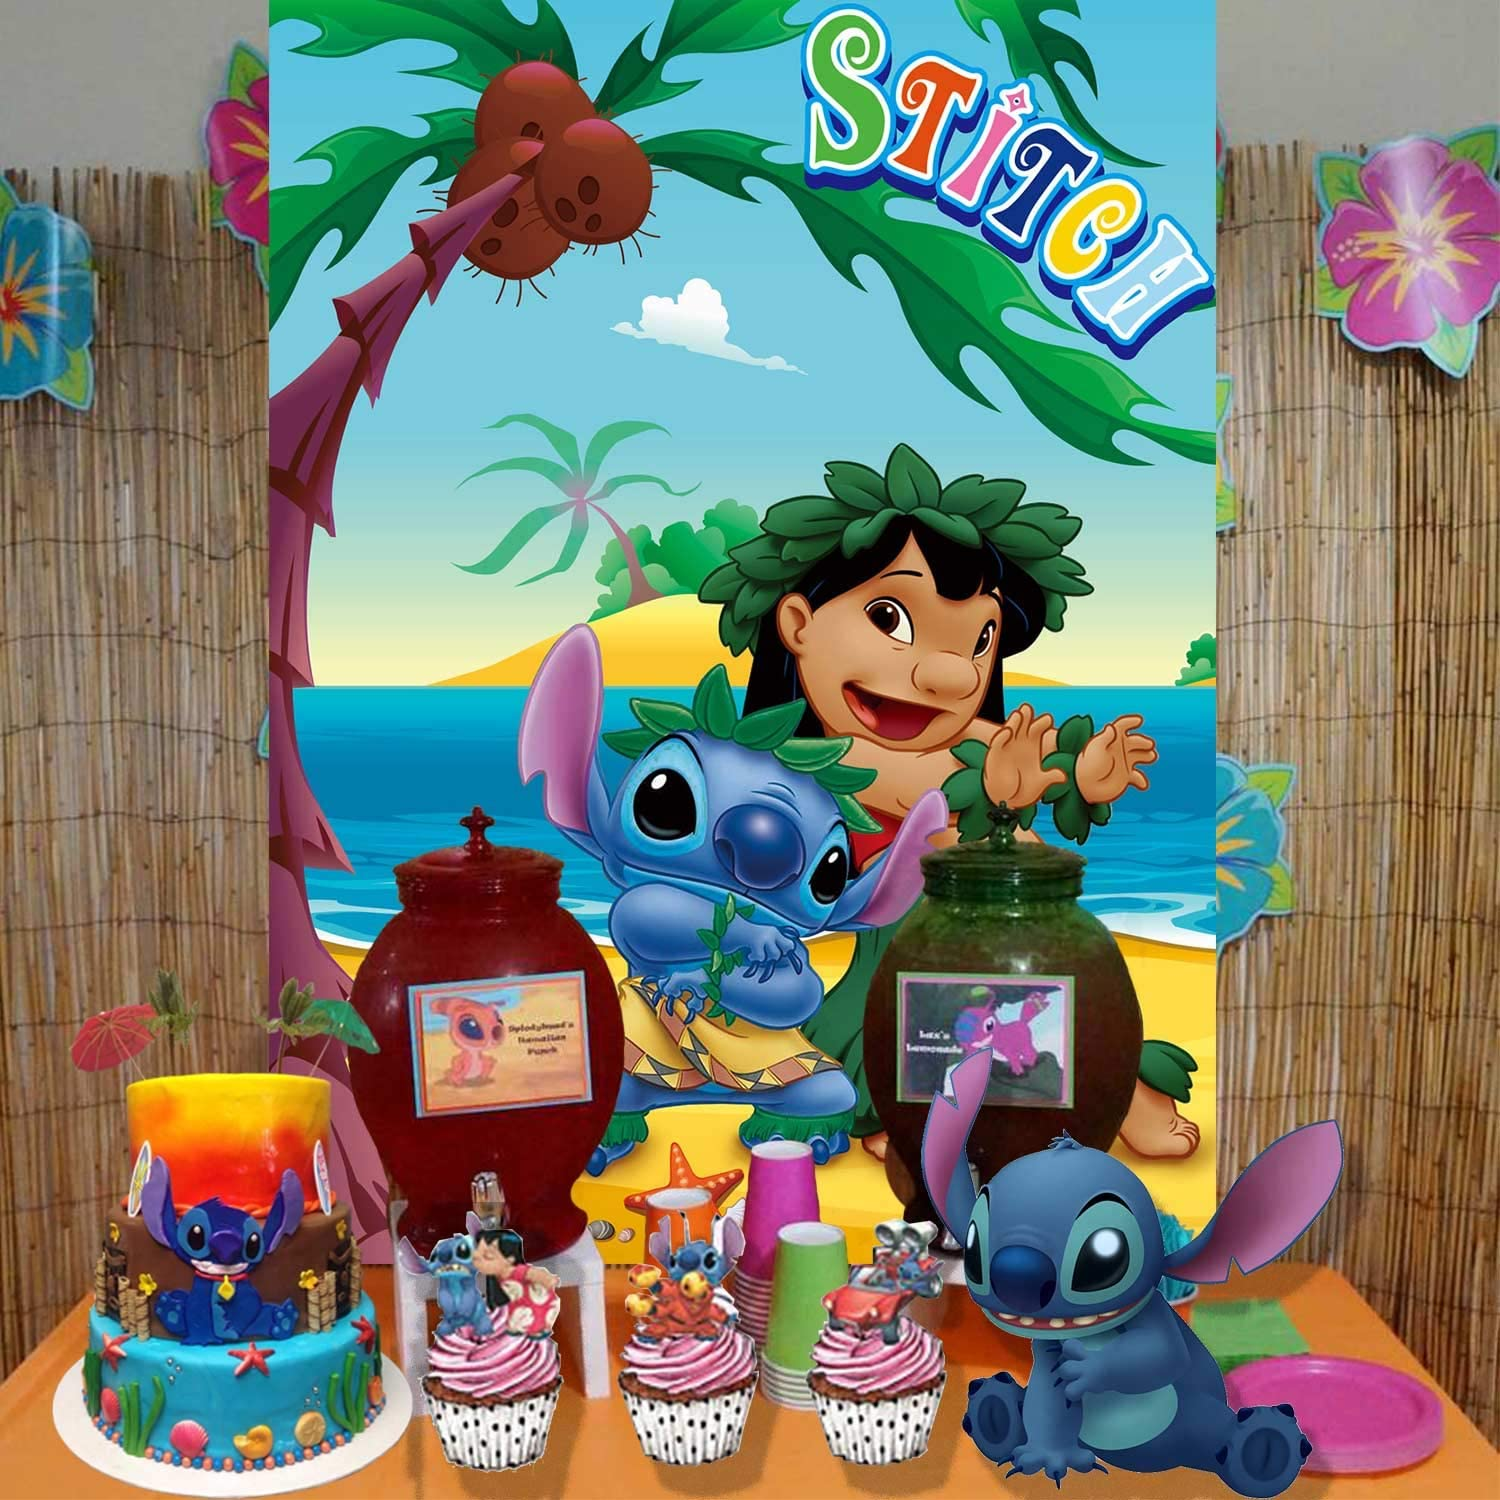 Amazon Com Stitch Backdrop Lilo And Stitch Party Decorations Birthday Baby Shower Tropical Background Photography Banner Camera Photo